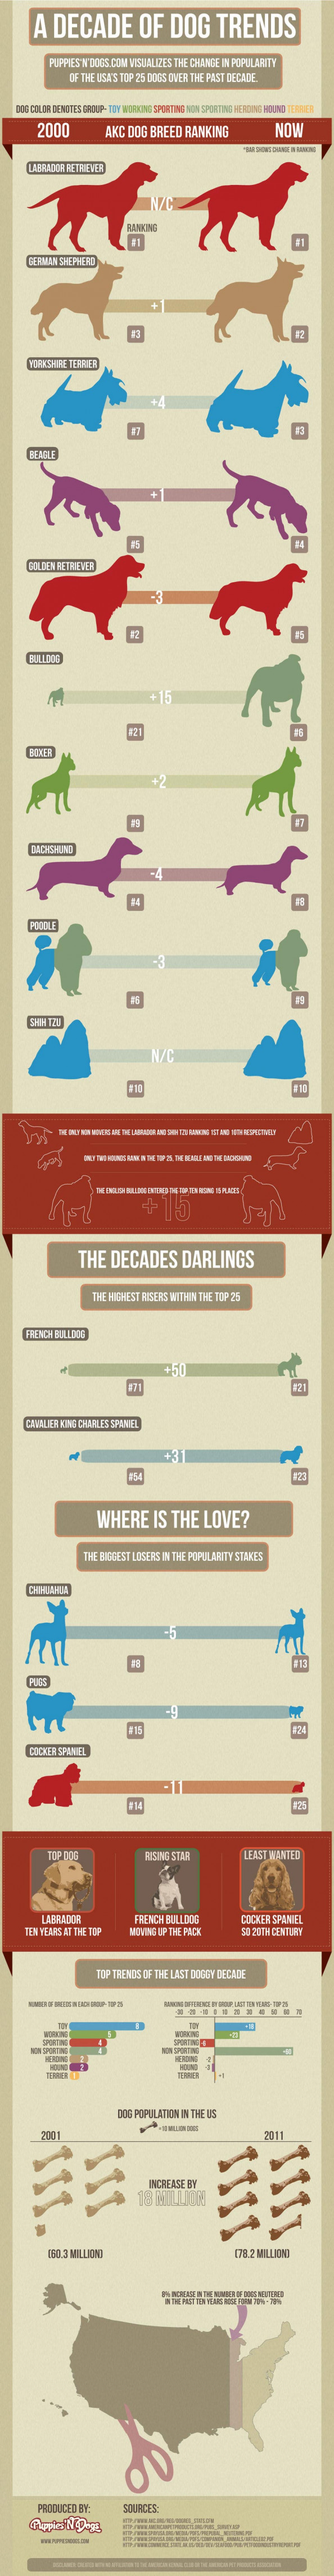 A Decade of Dogs Trends Infographic